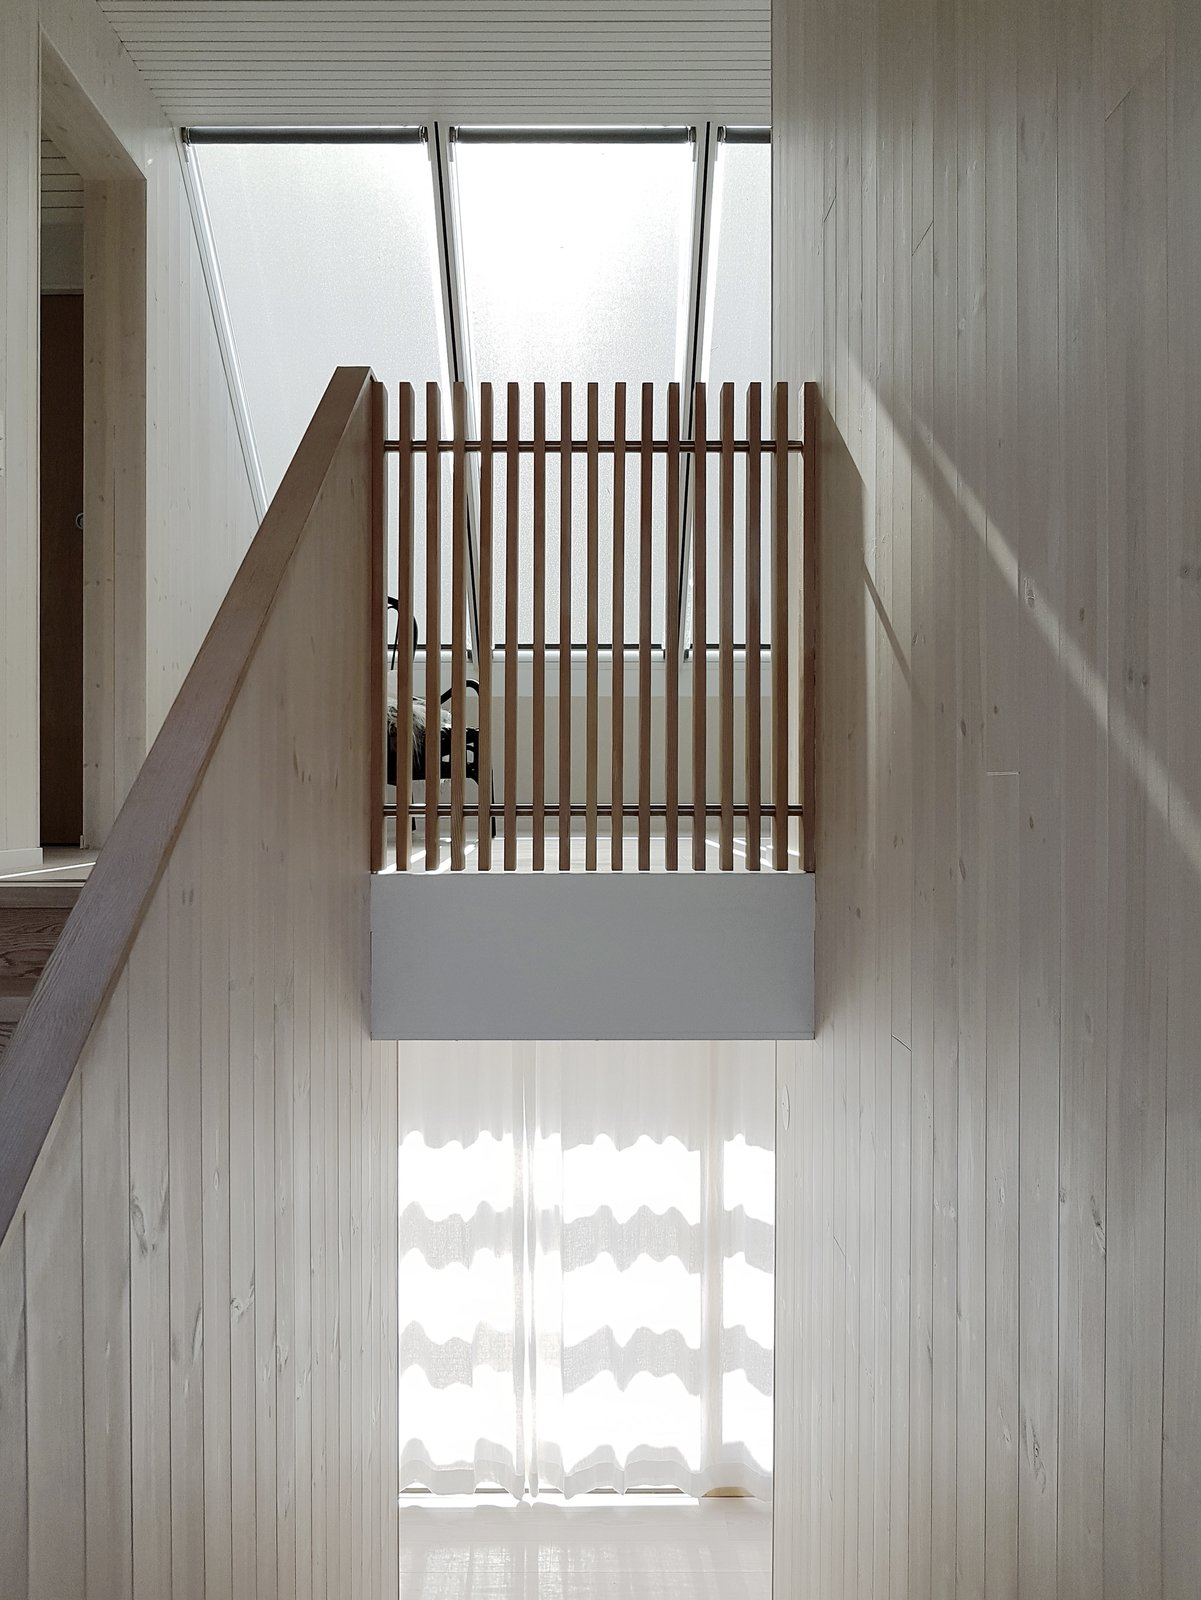 Large windows and skylights provide ample natural light which is reflected off the larch interiors and white ceilings.